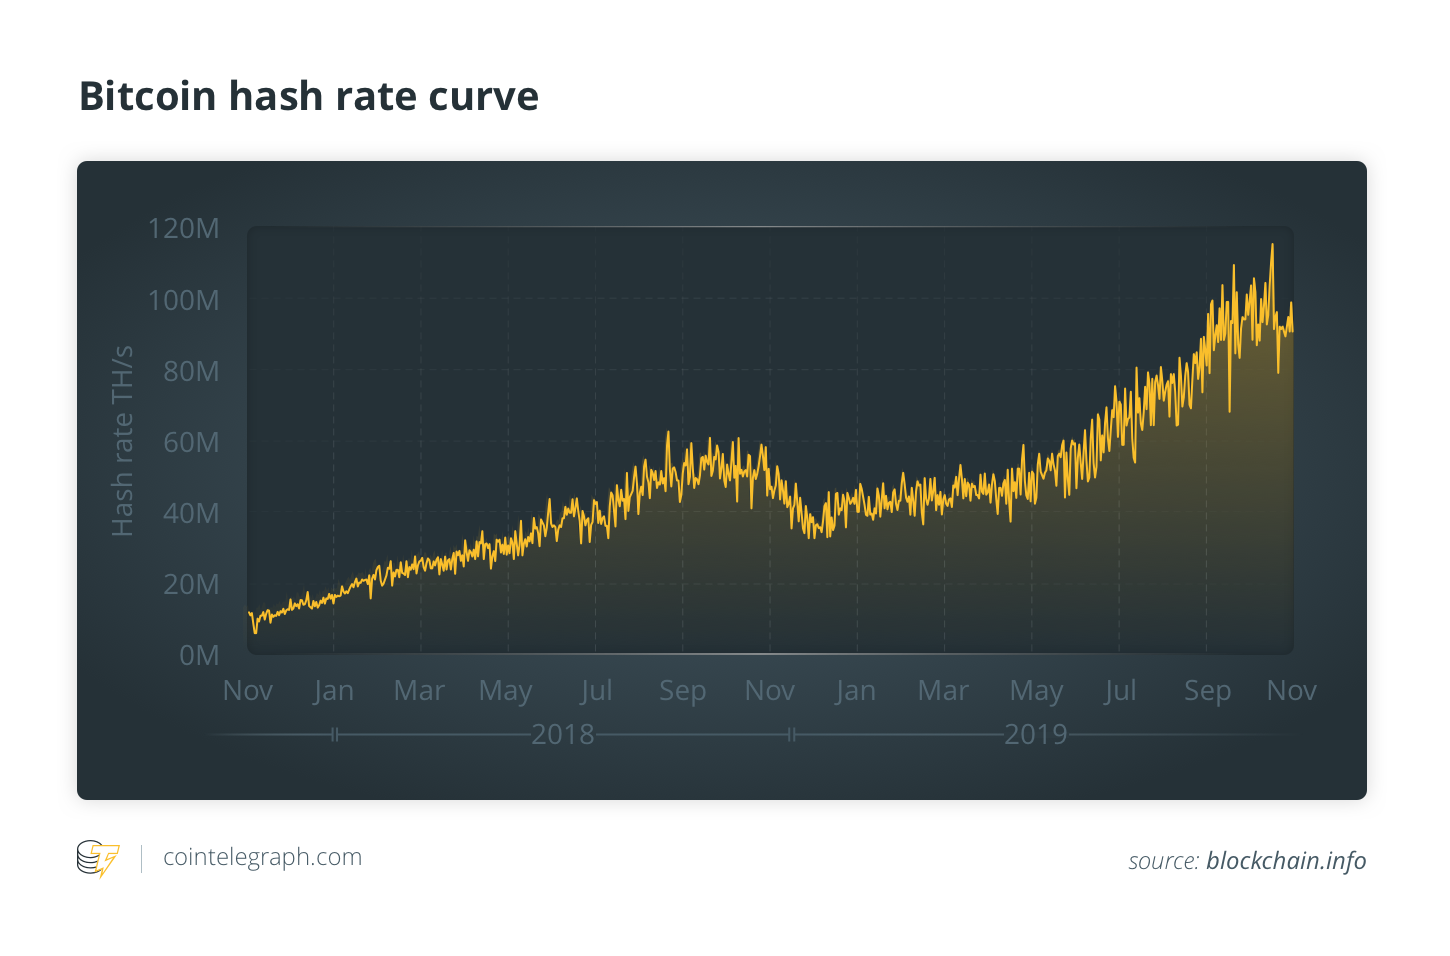 Bitcoin hash rate curve